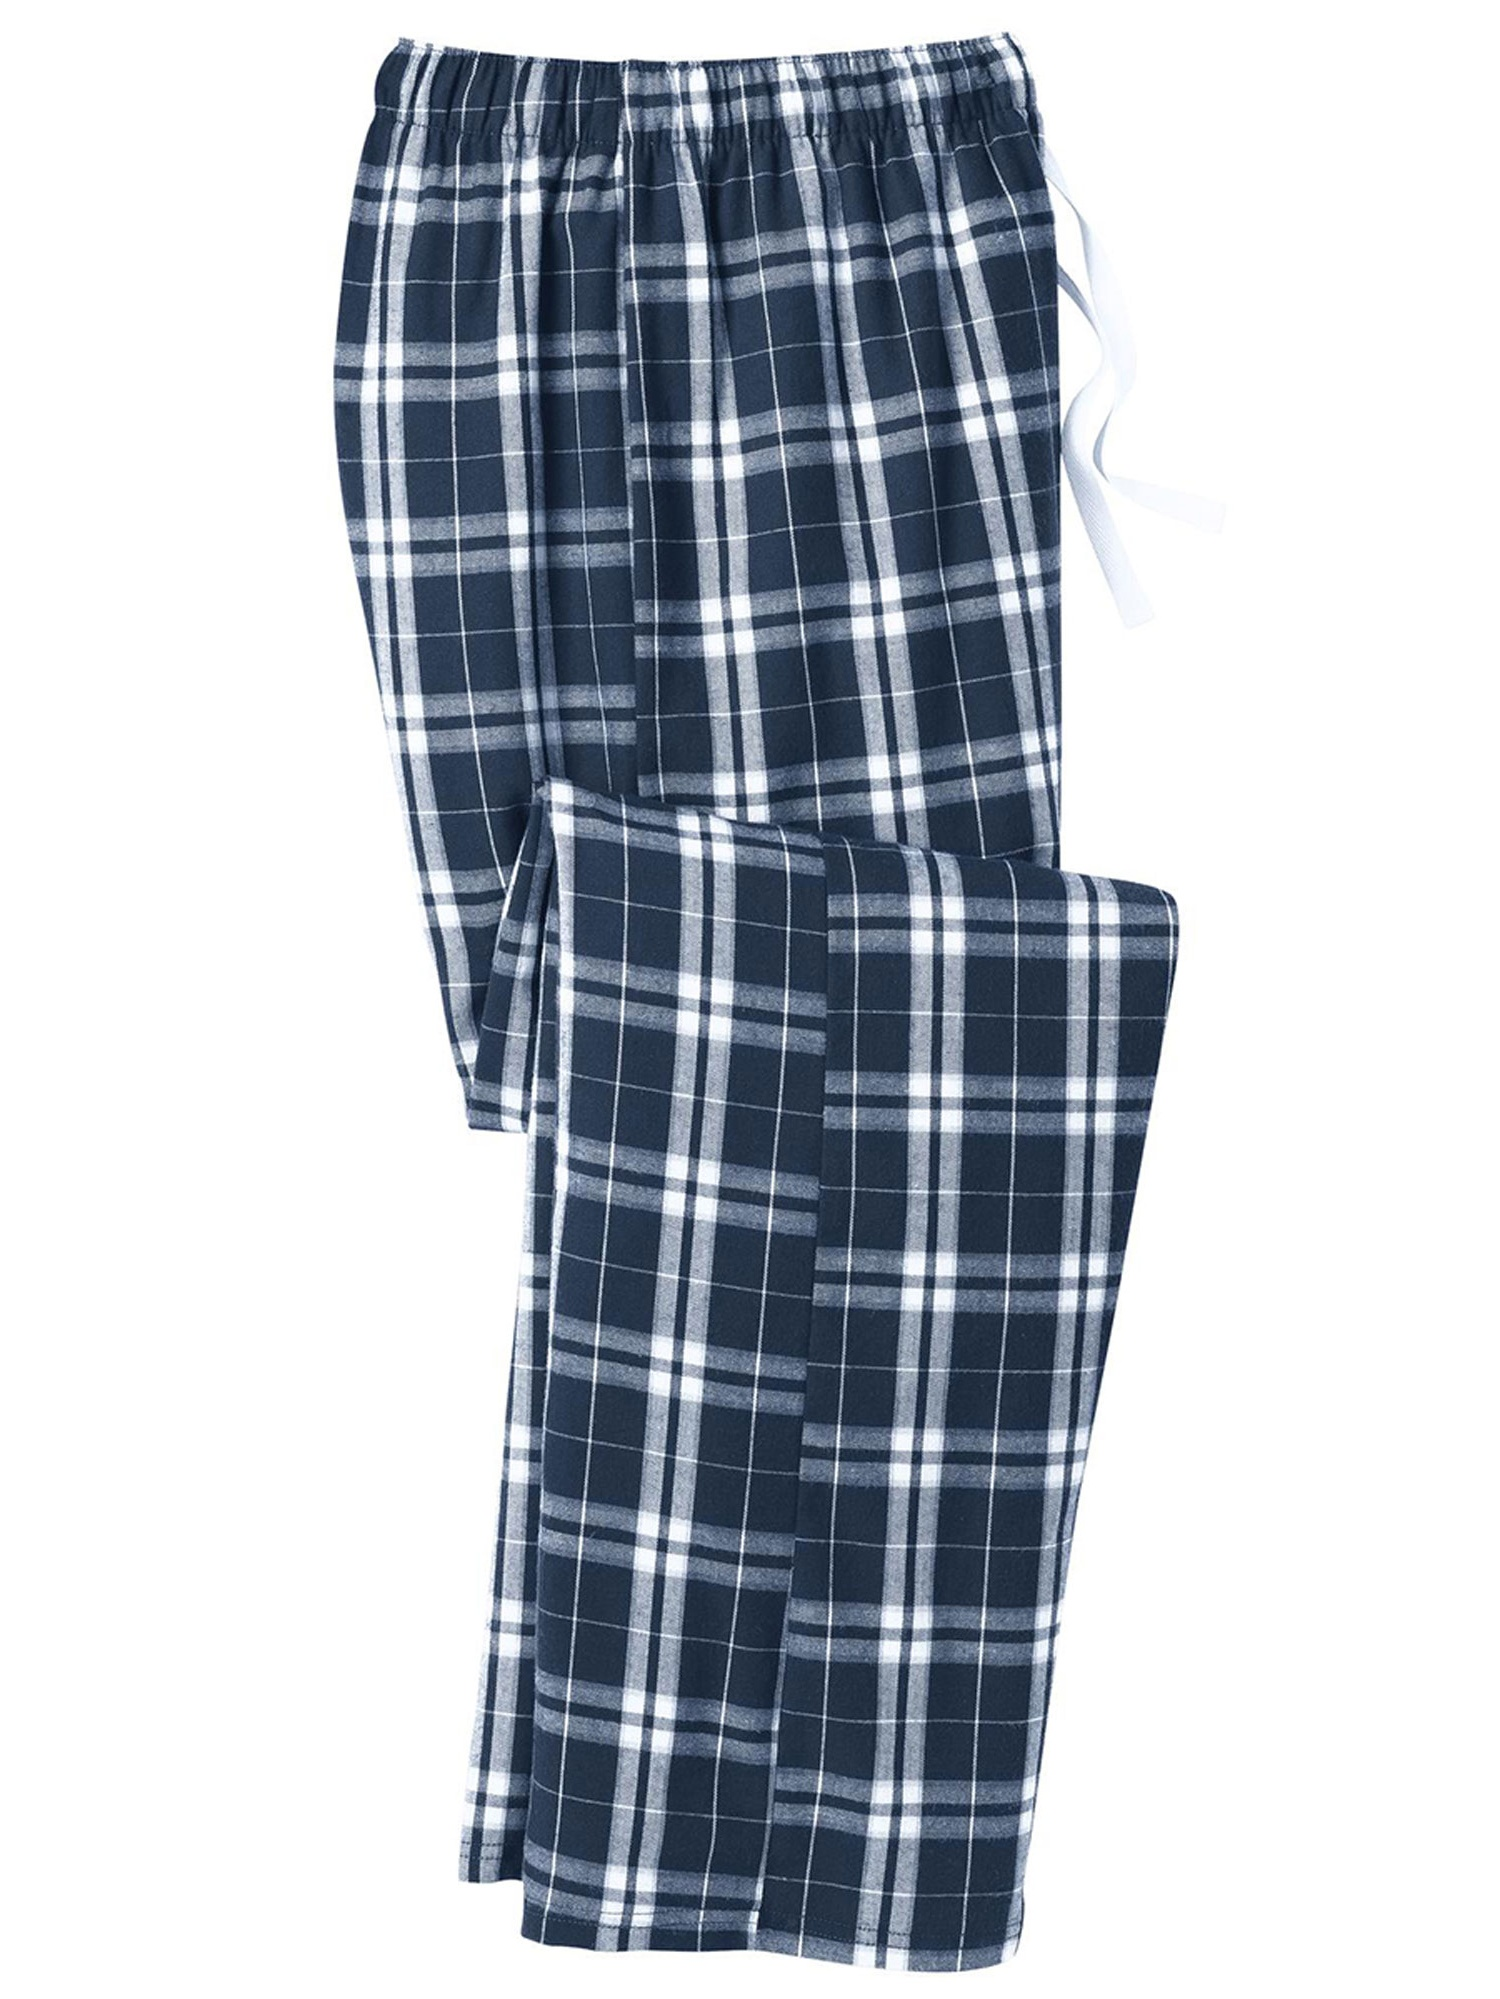 District Men's Flannel Plaid Elastic Waistband Pant